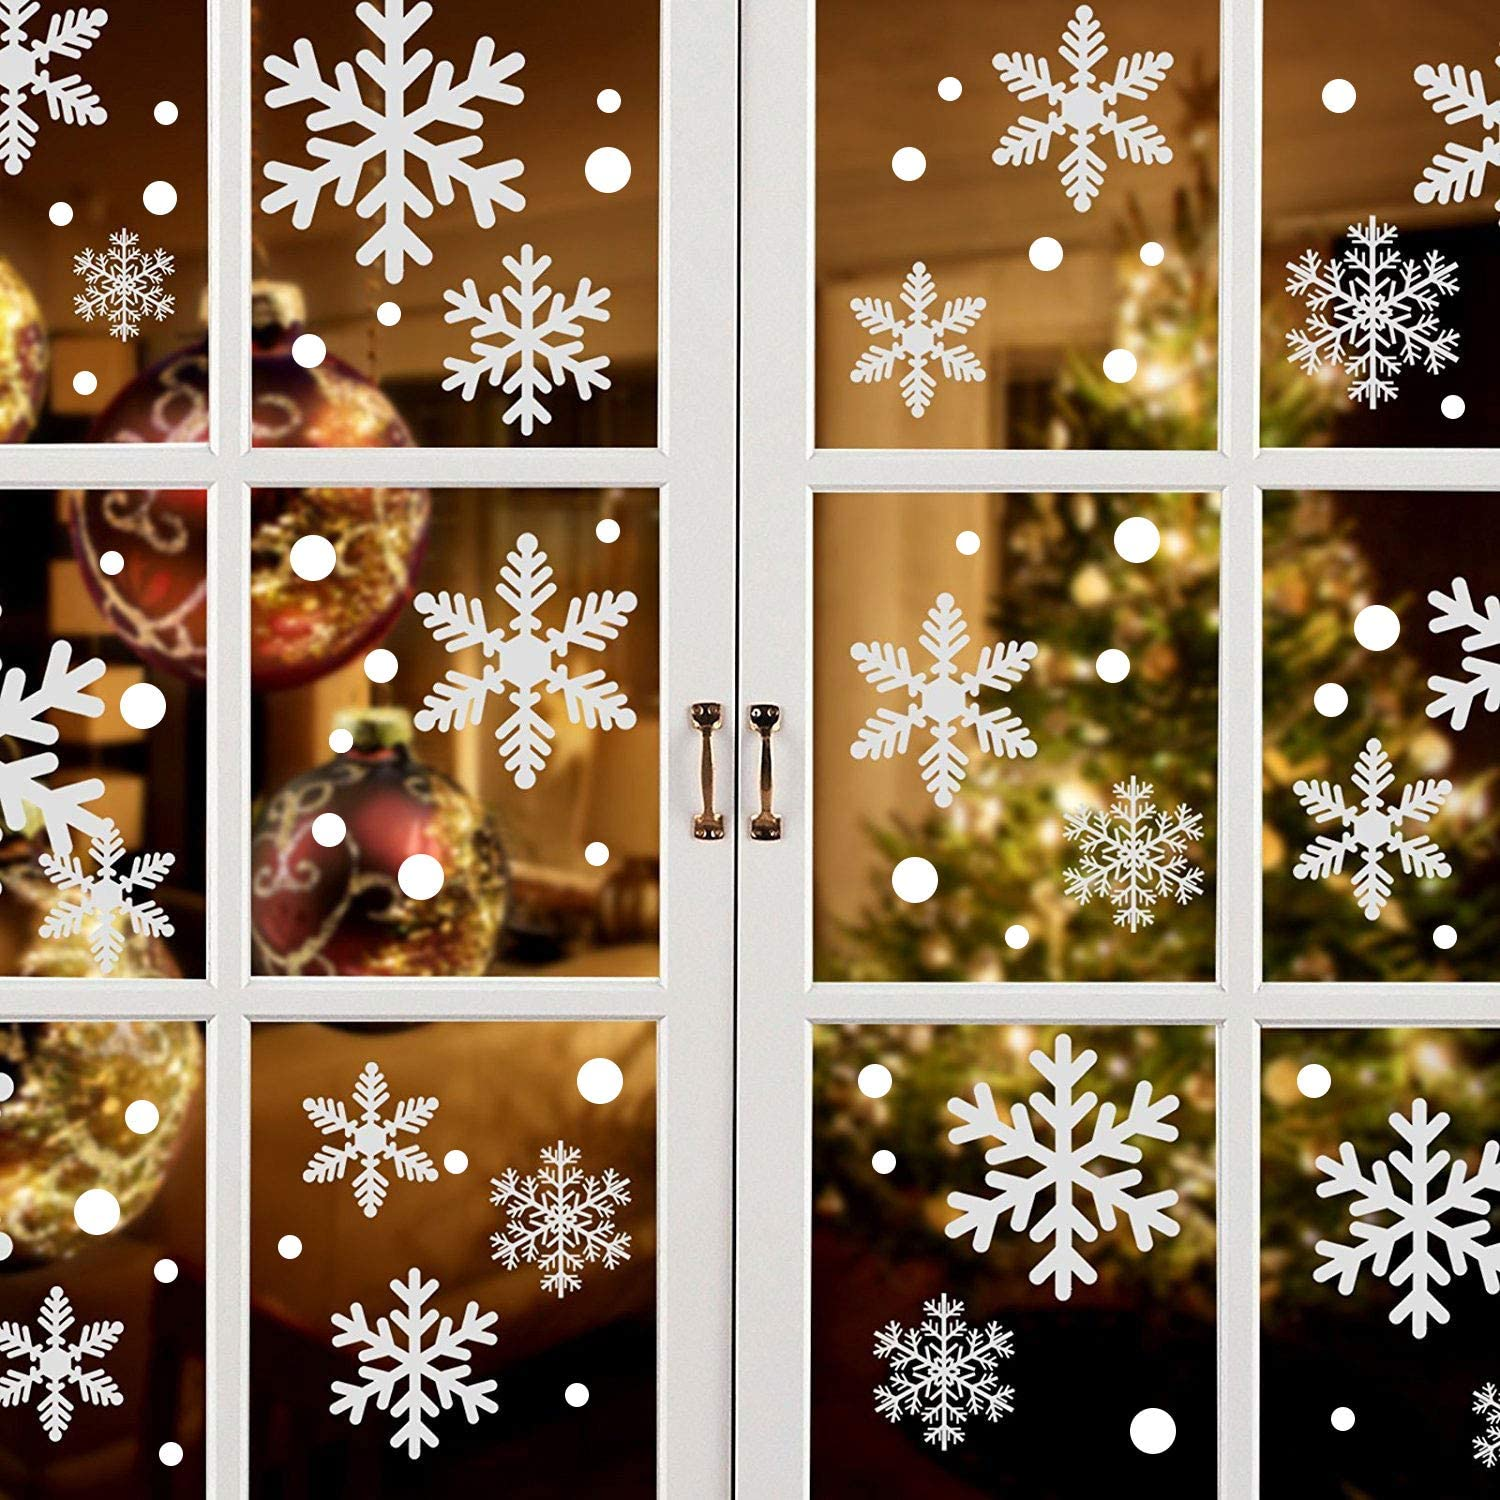 223PCS+ Christmas White Snowflakes Window Clings Decal Stickers for Winter Frozen Party Supplies Wonderland Decorations Ornaments (9 Sheets)